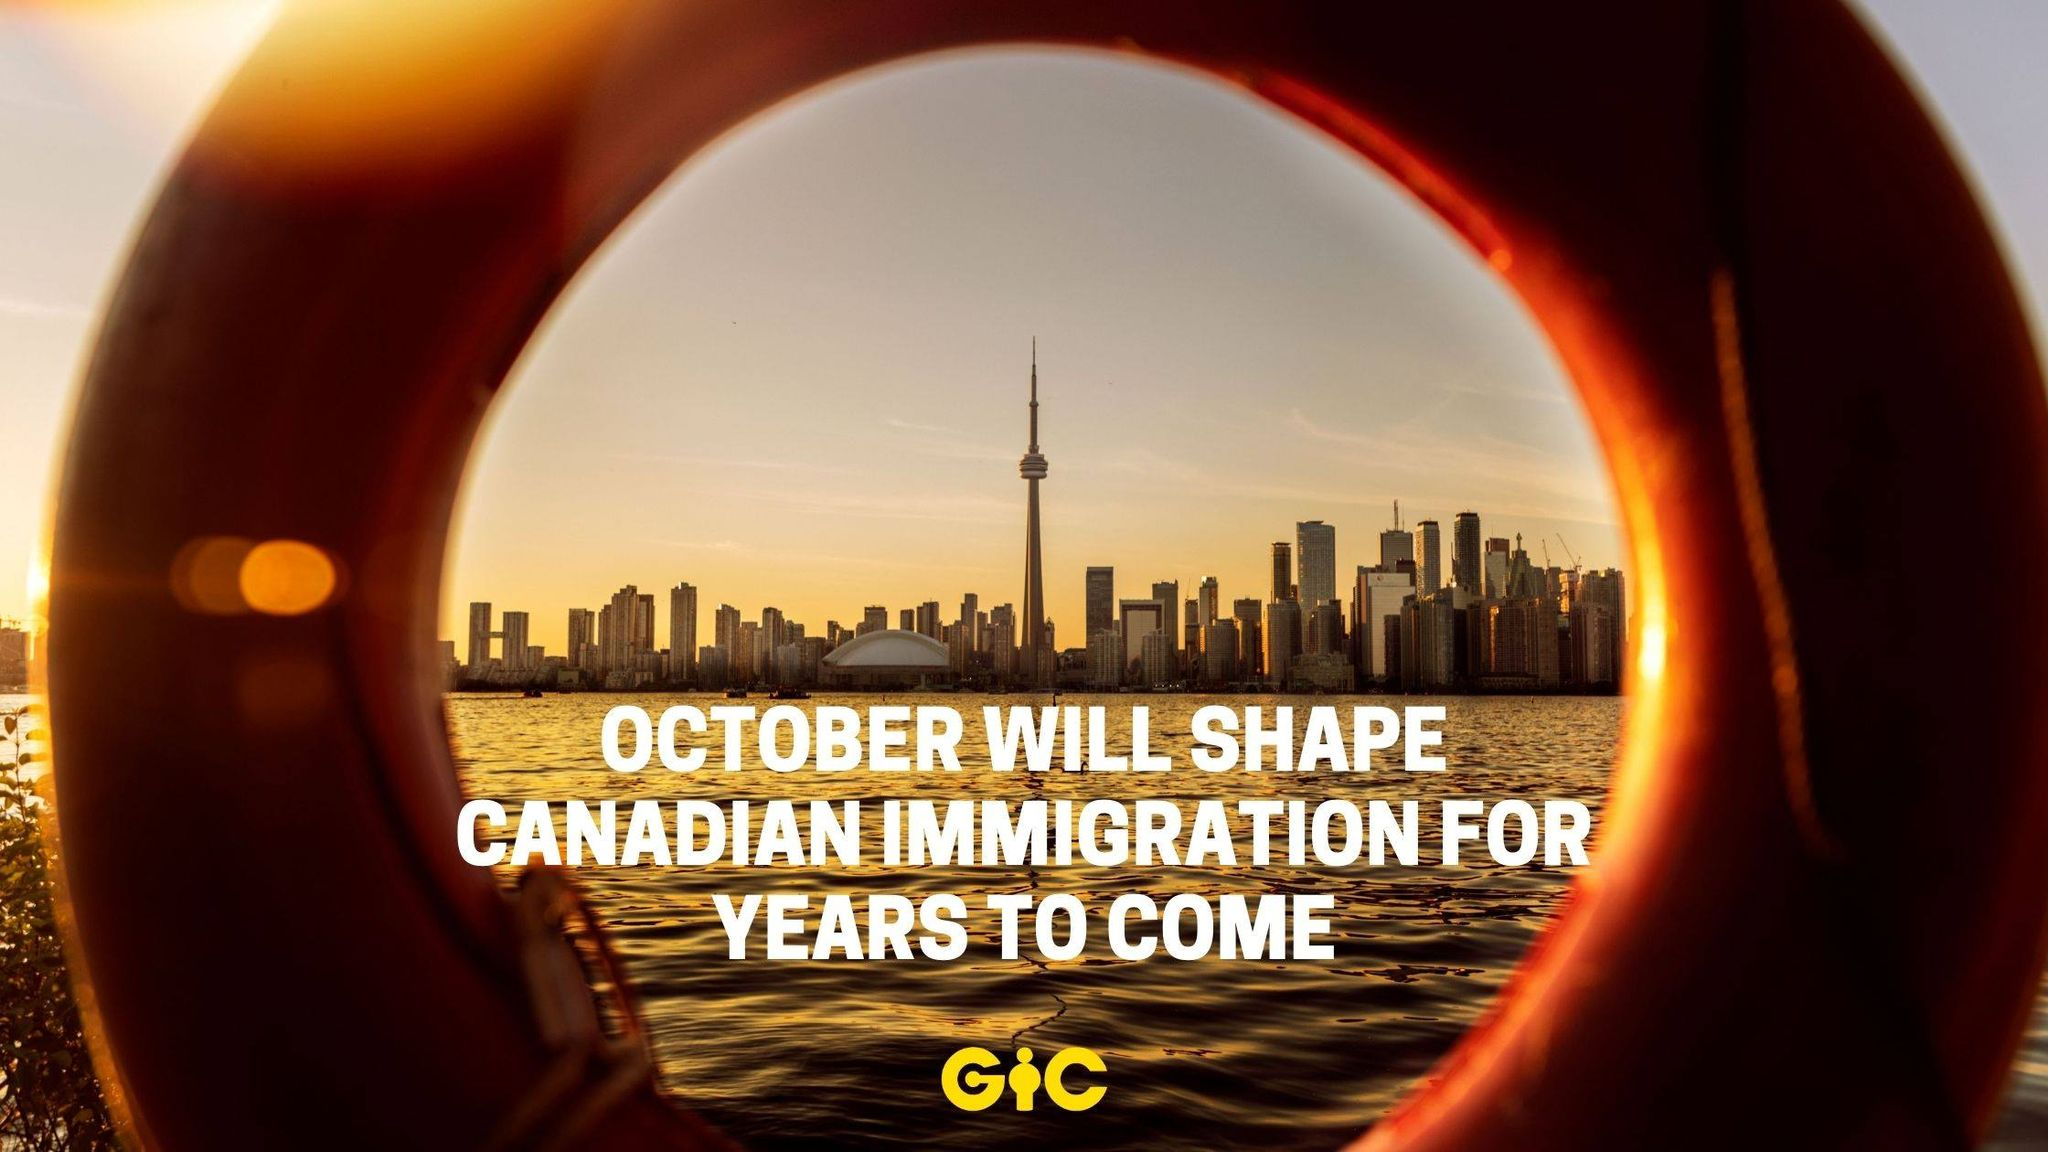 October will shape Canadian immigration for years to come